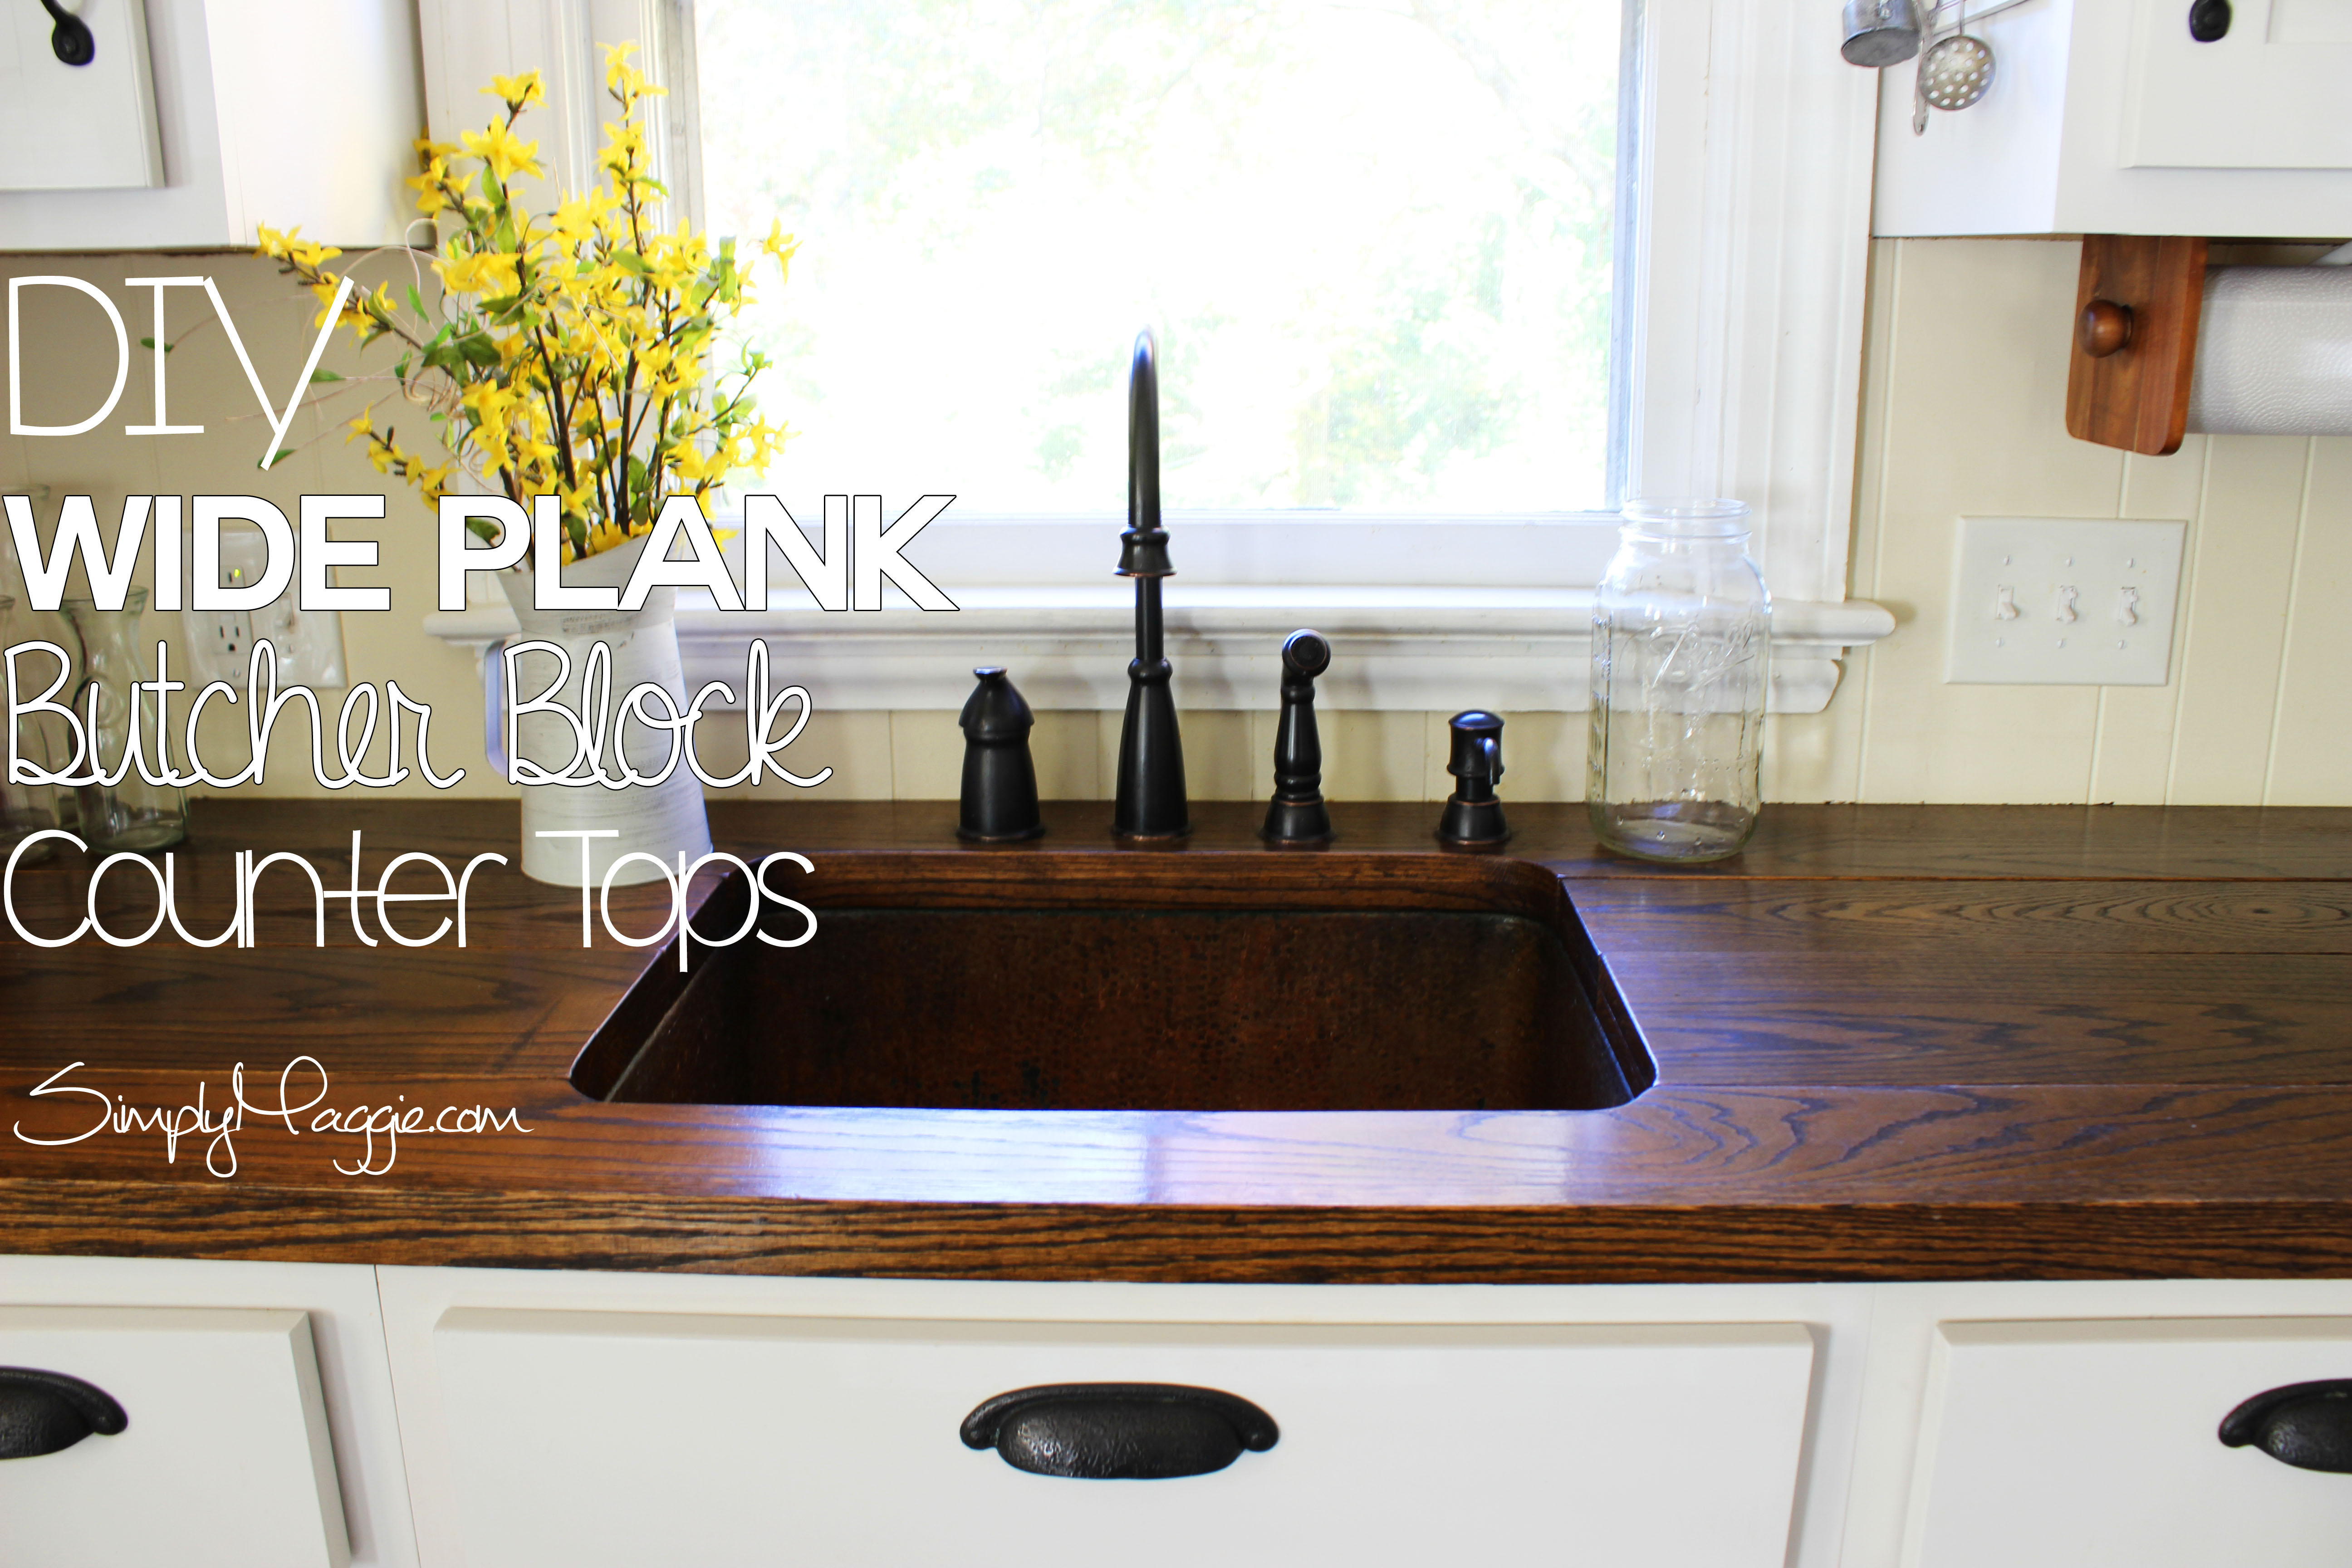 DIY Wide Plank Butcher Block Counter Tops